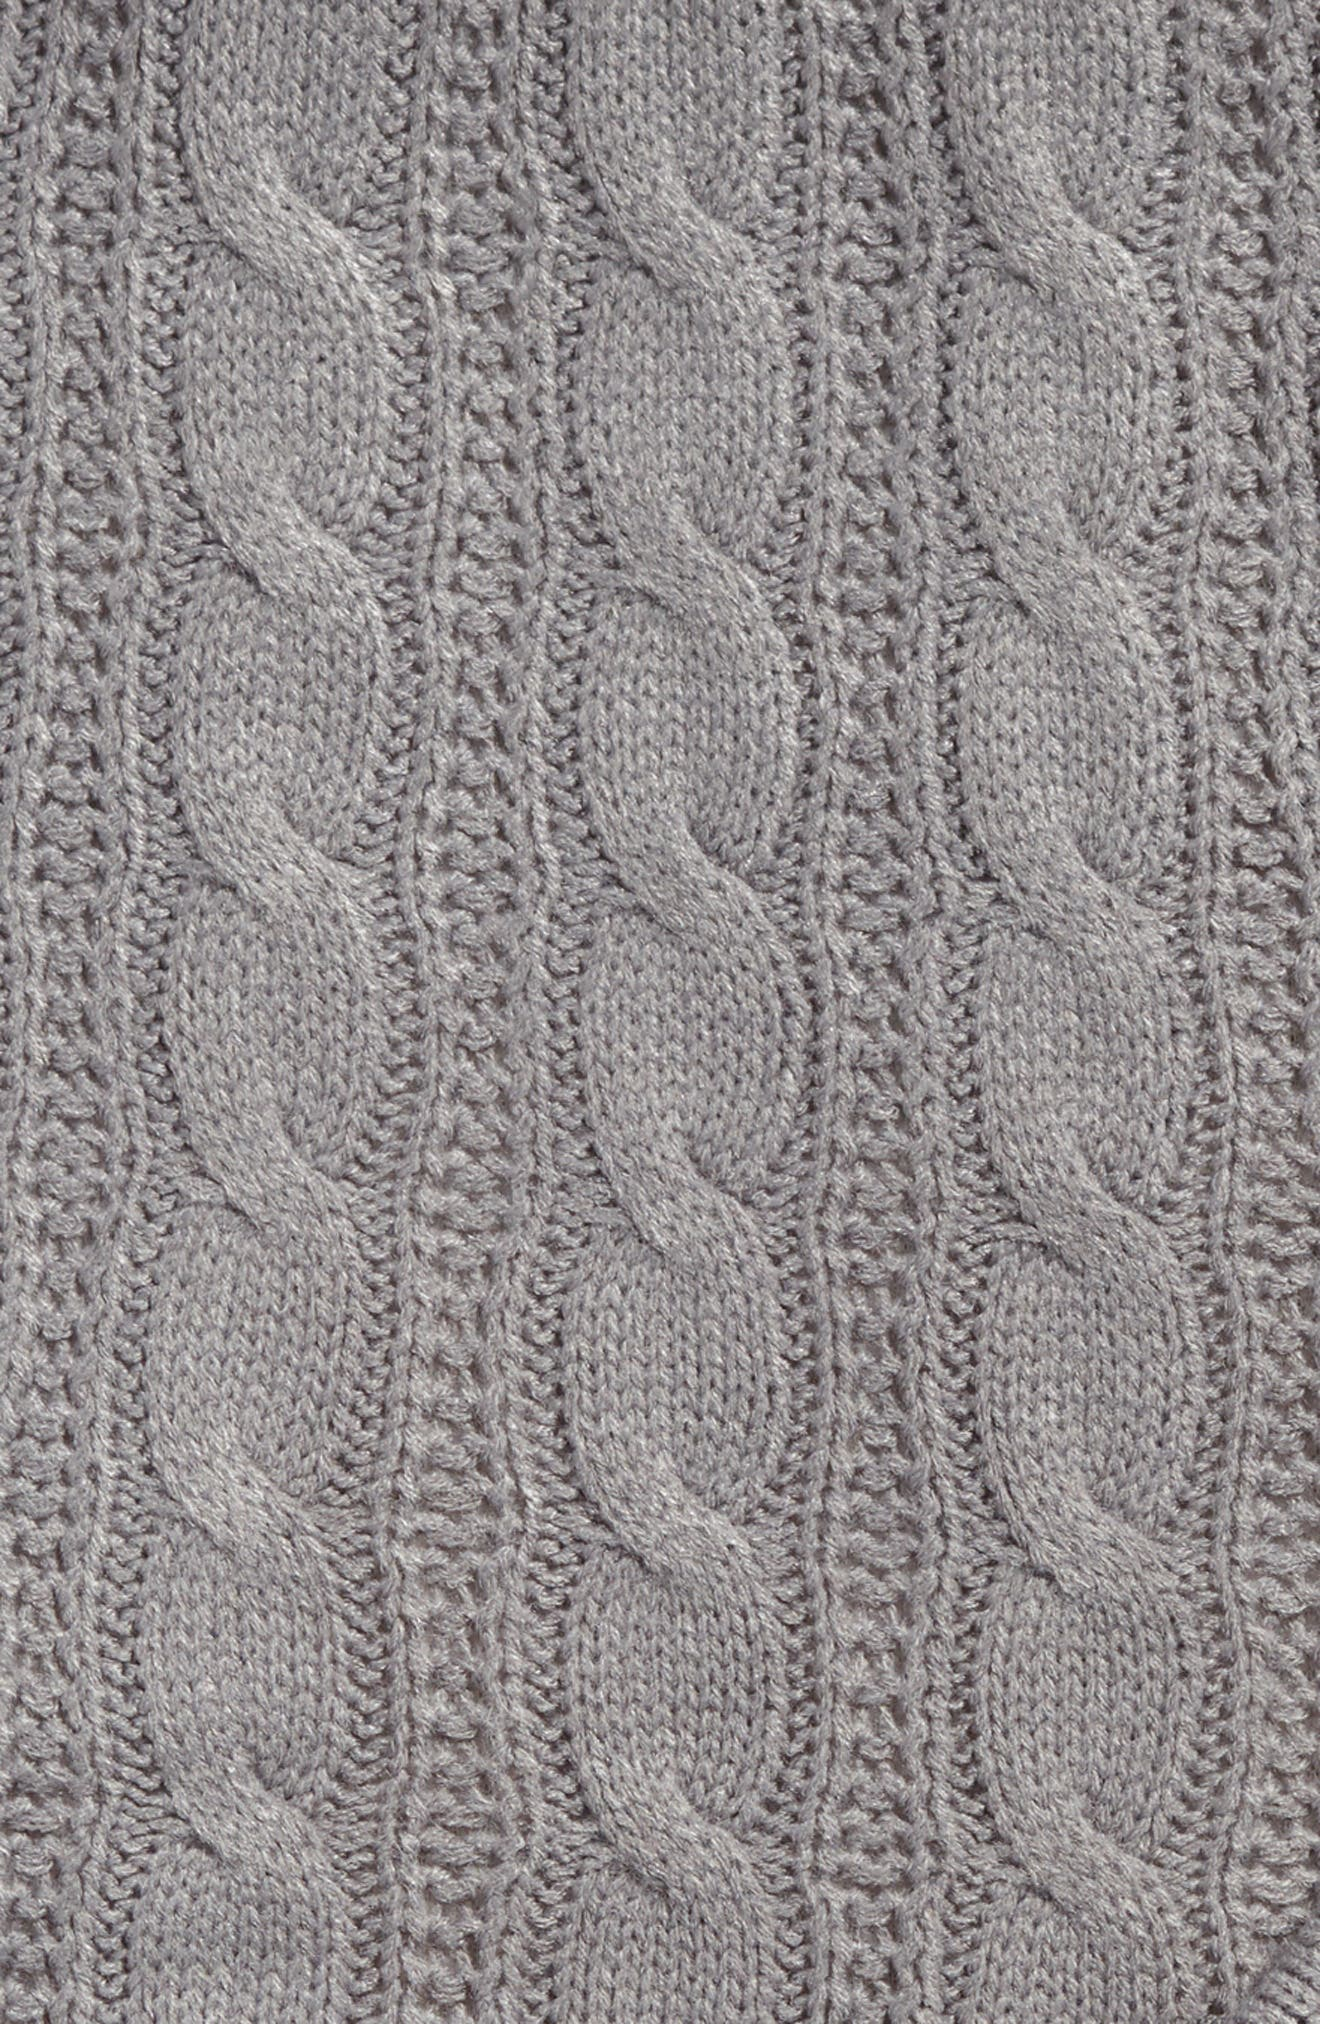 Cable Knit Throw Blanket,                             Alternate thumbnail 2, color,                             020